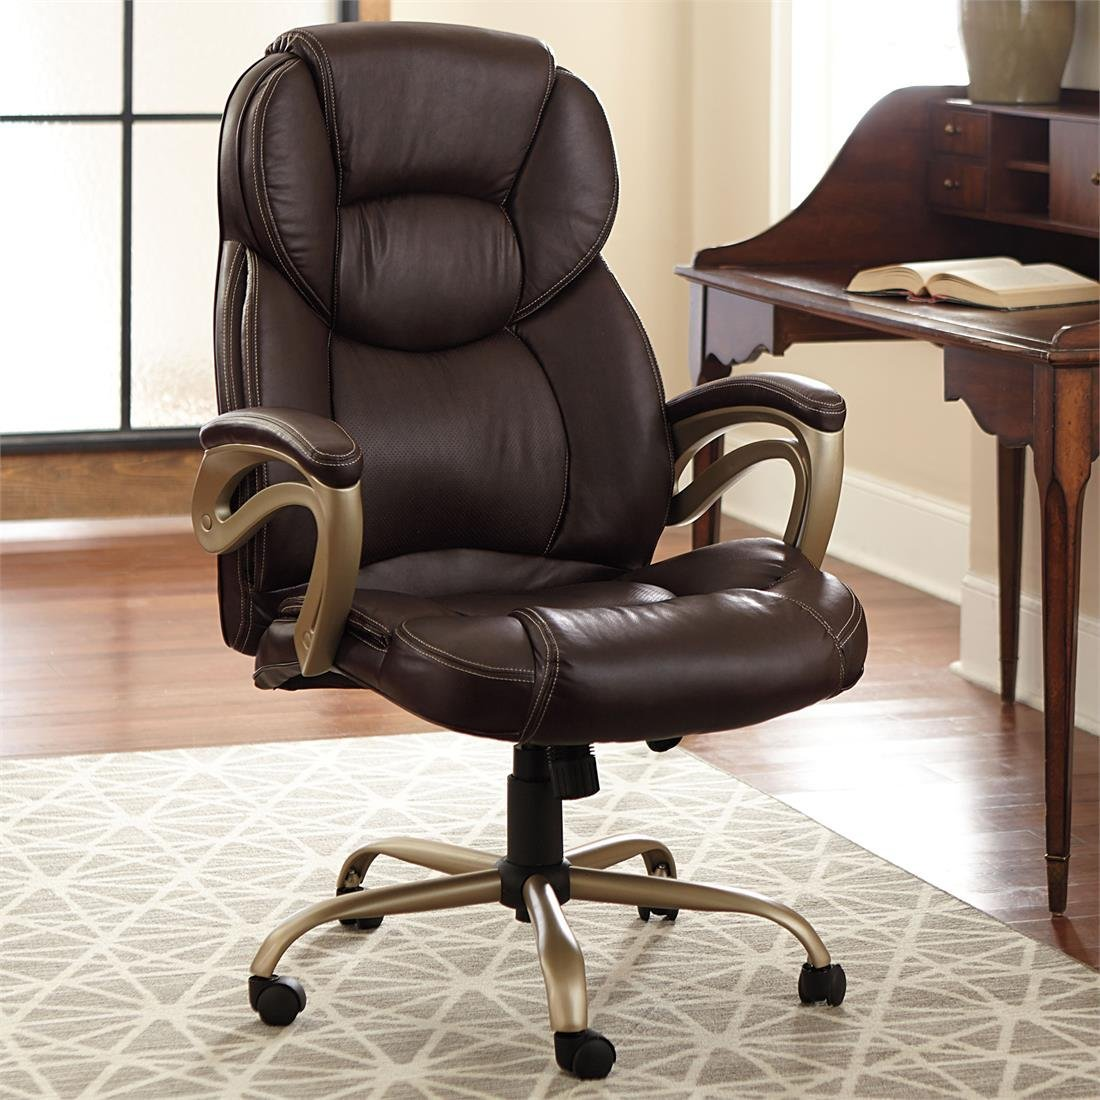 Memory Foam Office Chair 10 Big And Tall Office Chairs For Extra Large Comfort